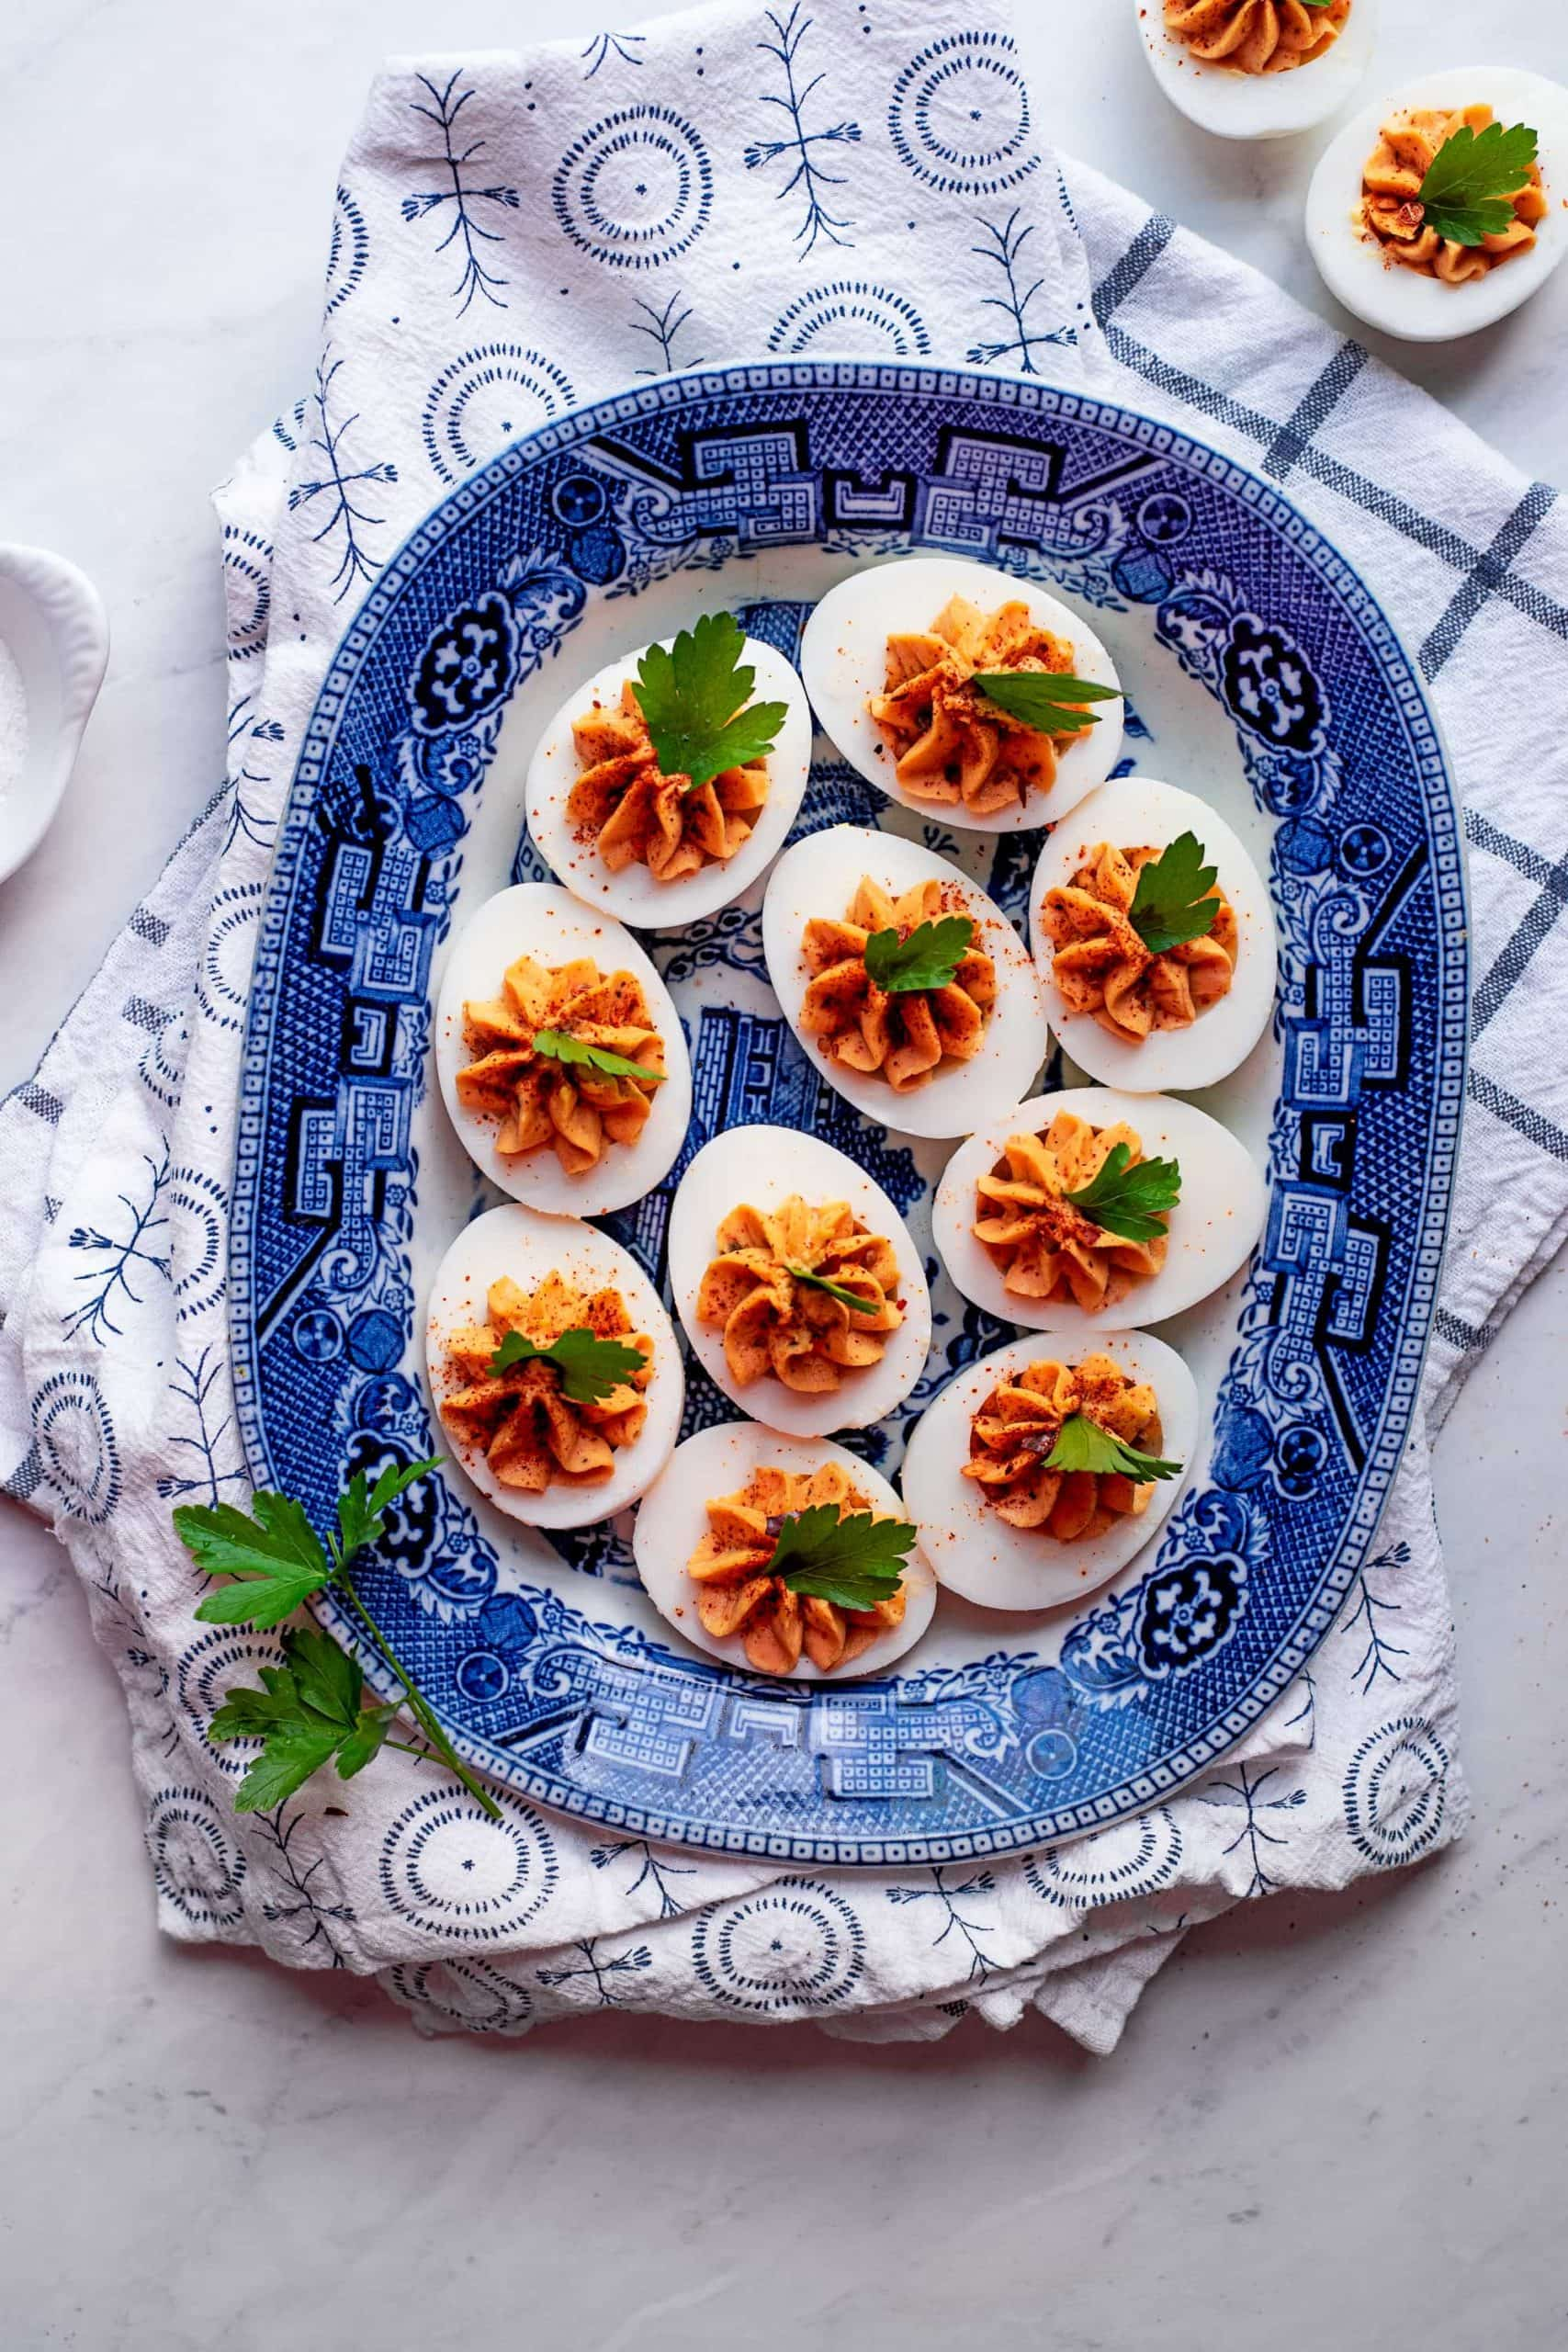 Harissa Deviled Eggs 6487 scaled - Instant Pot Harissa Deviled Eggs